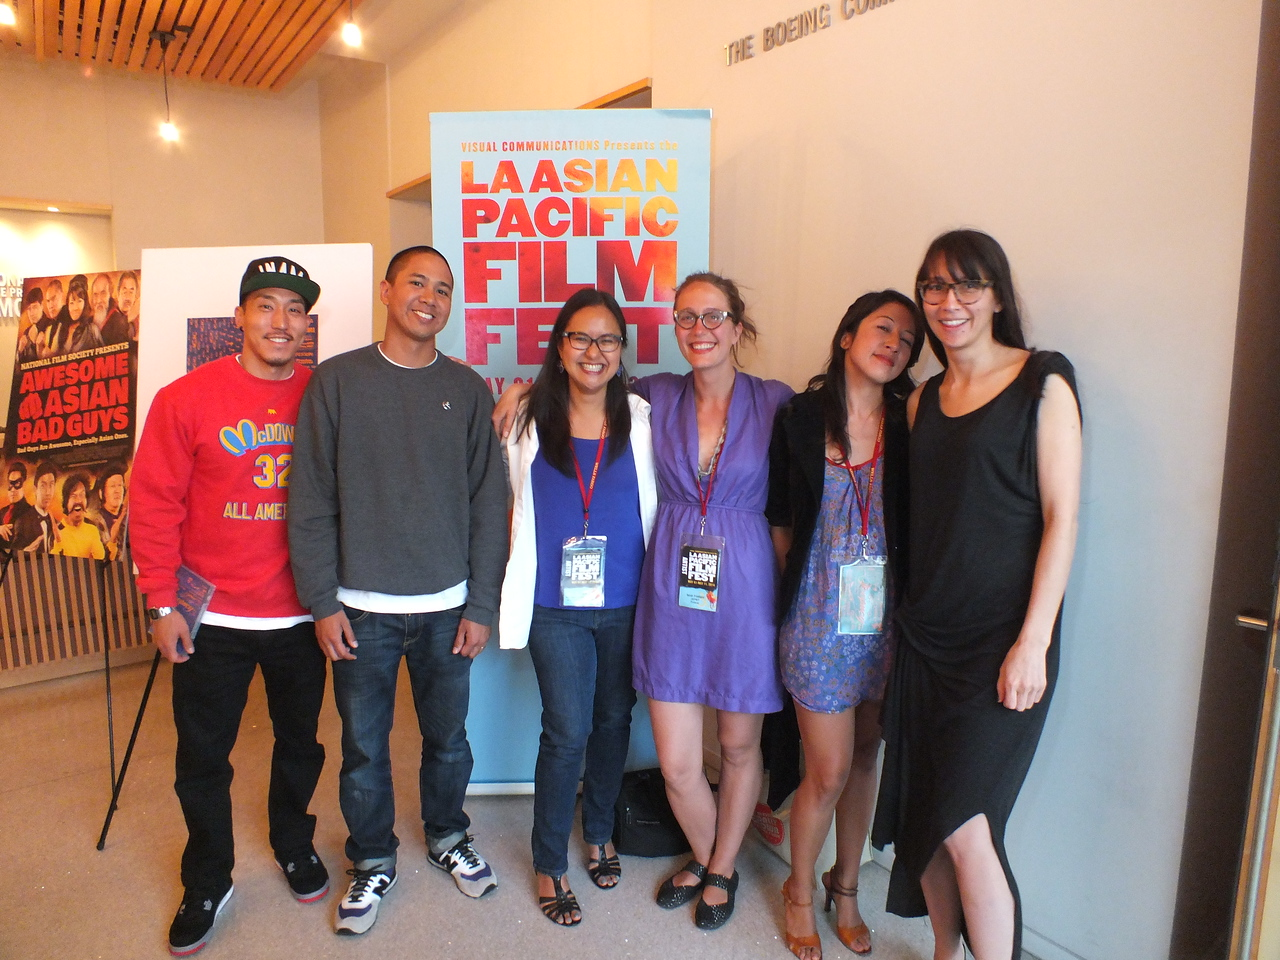 Film makers, (L-R) Tad Nakamura, Eric Tandoc, Marissa Aroy, Sara Friedland, Esy Casey, Ursula Liang.<br /> LA Asian Pacific Film Fest - May 9, 2014 at JANM